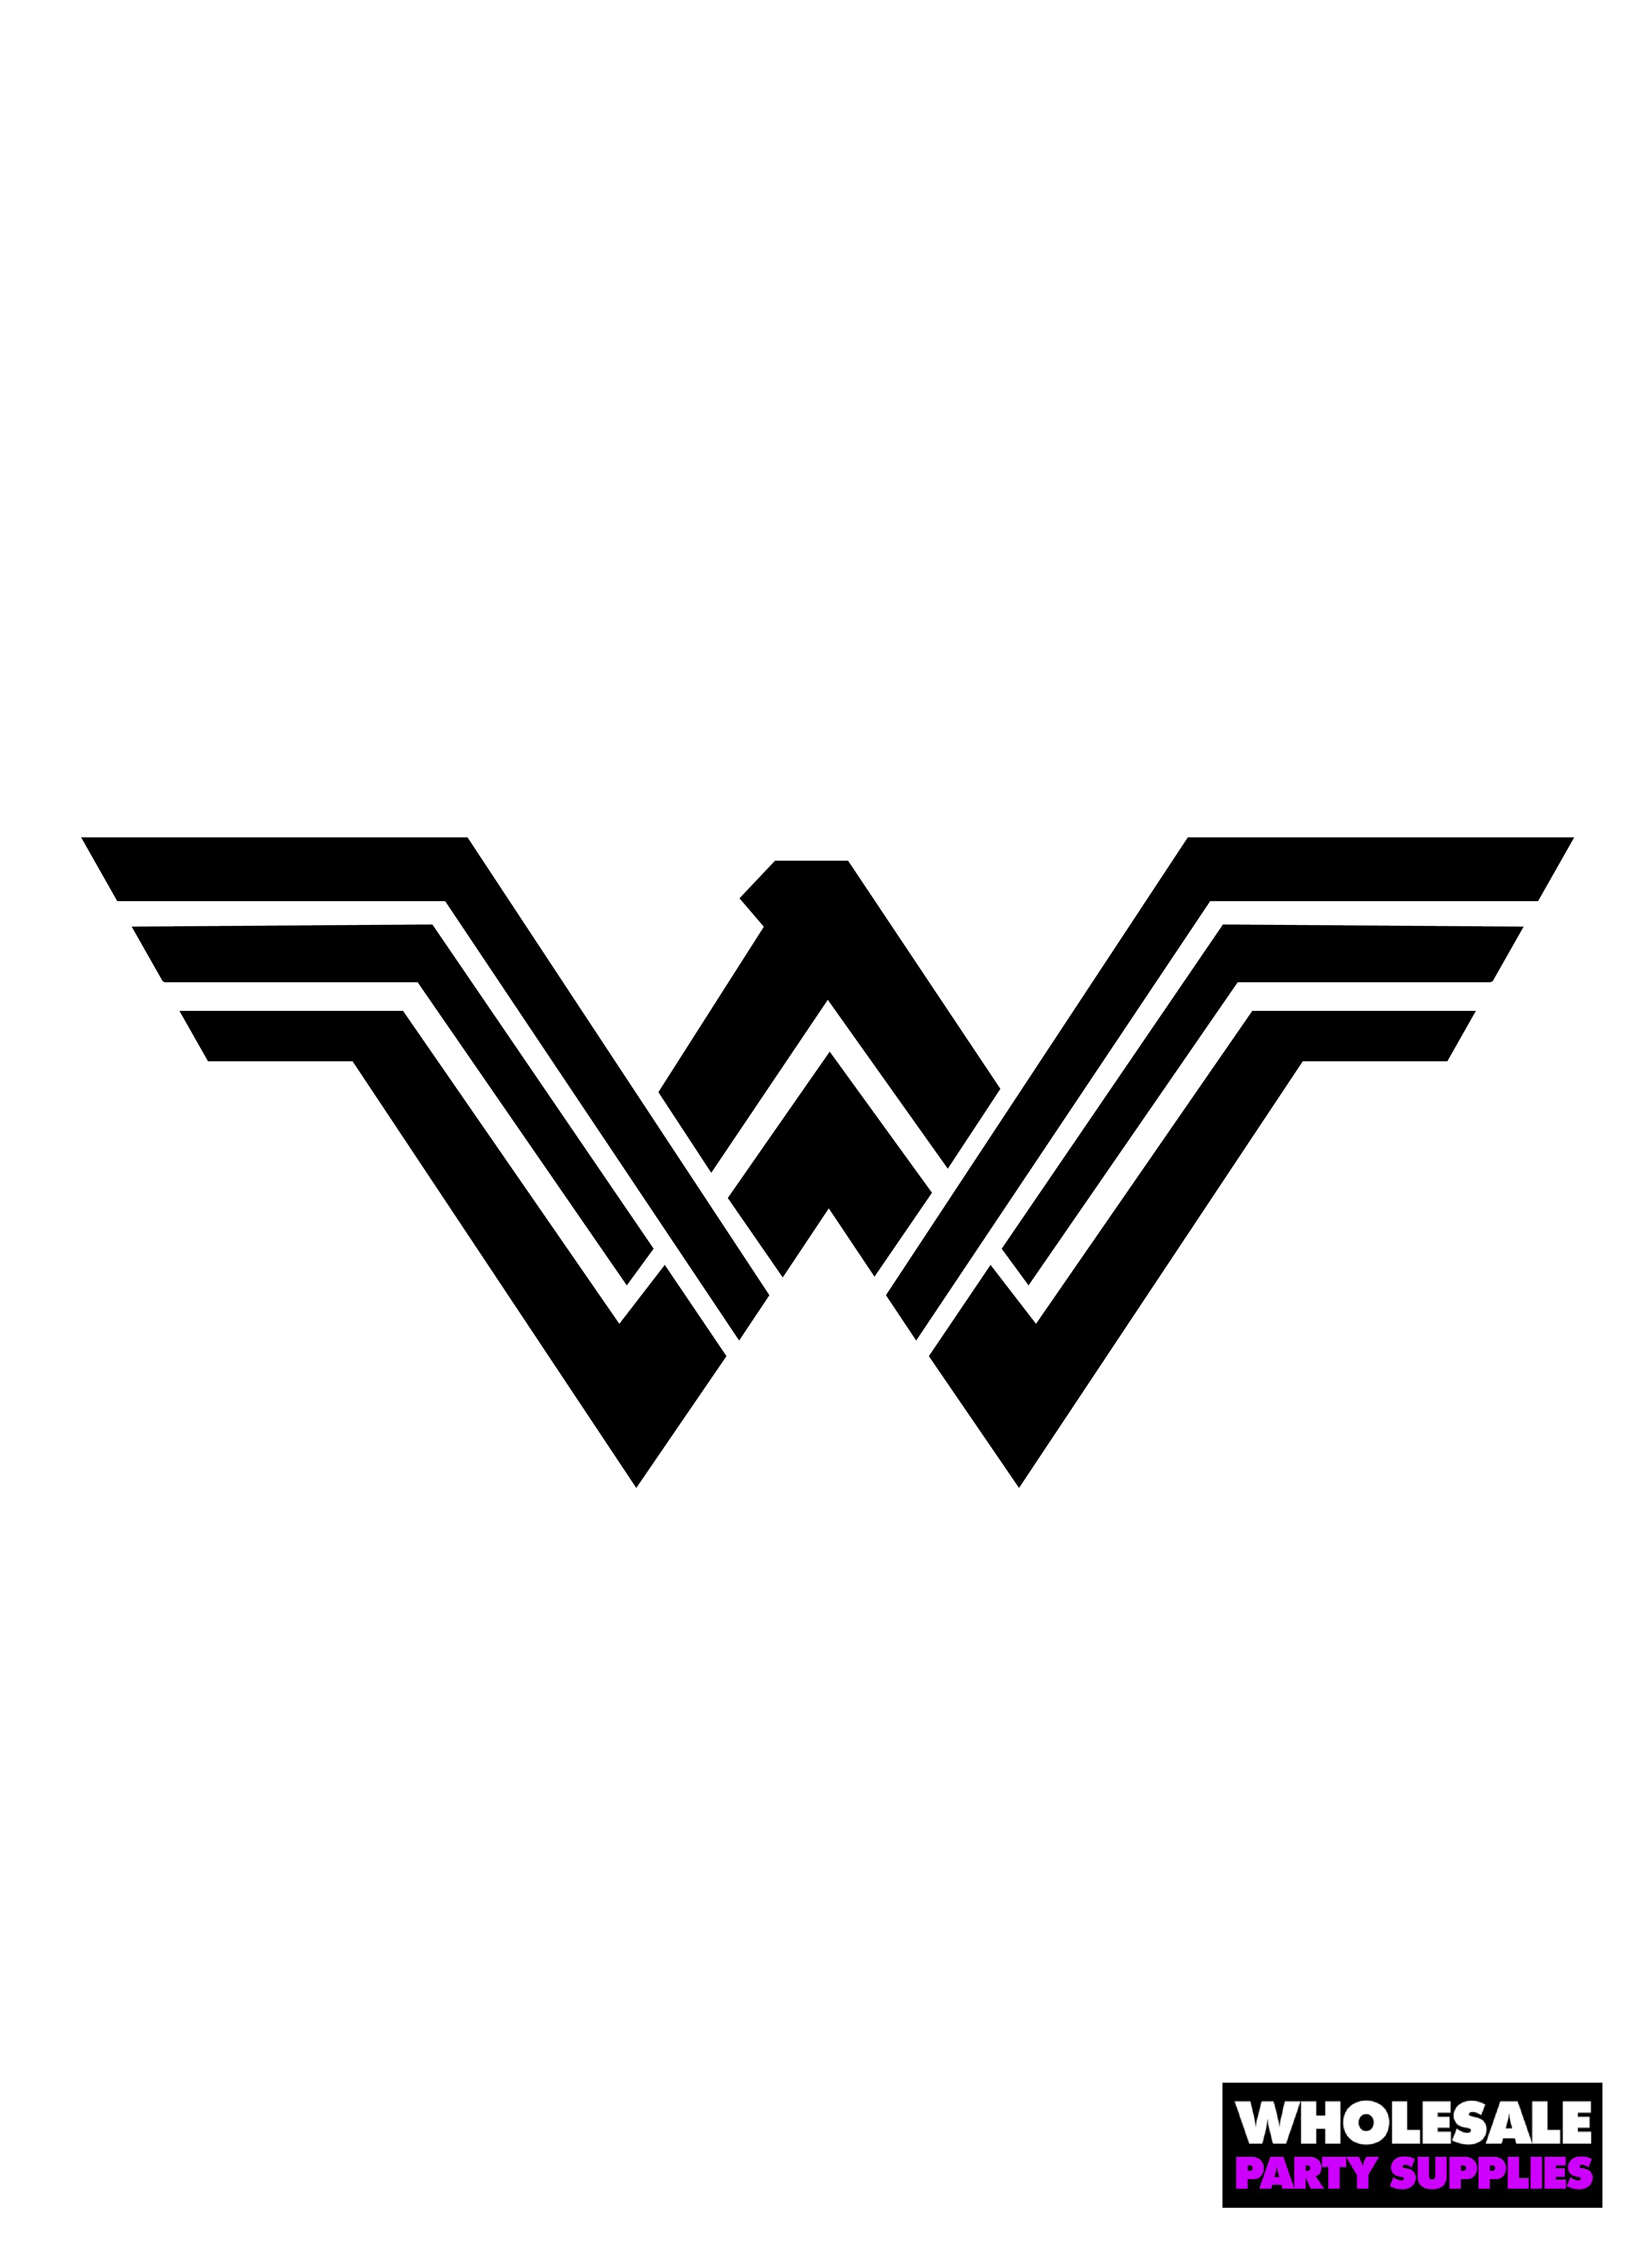 Justice league pumpkin stencils party ideas activities by wonder woman stencil pronofoot35fo Image collections